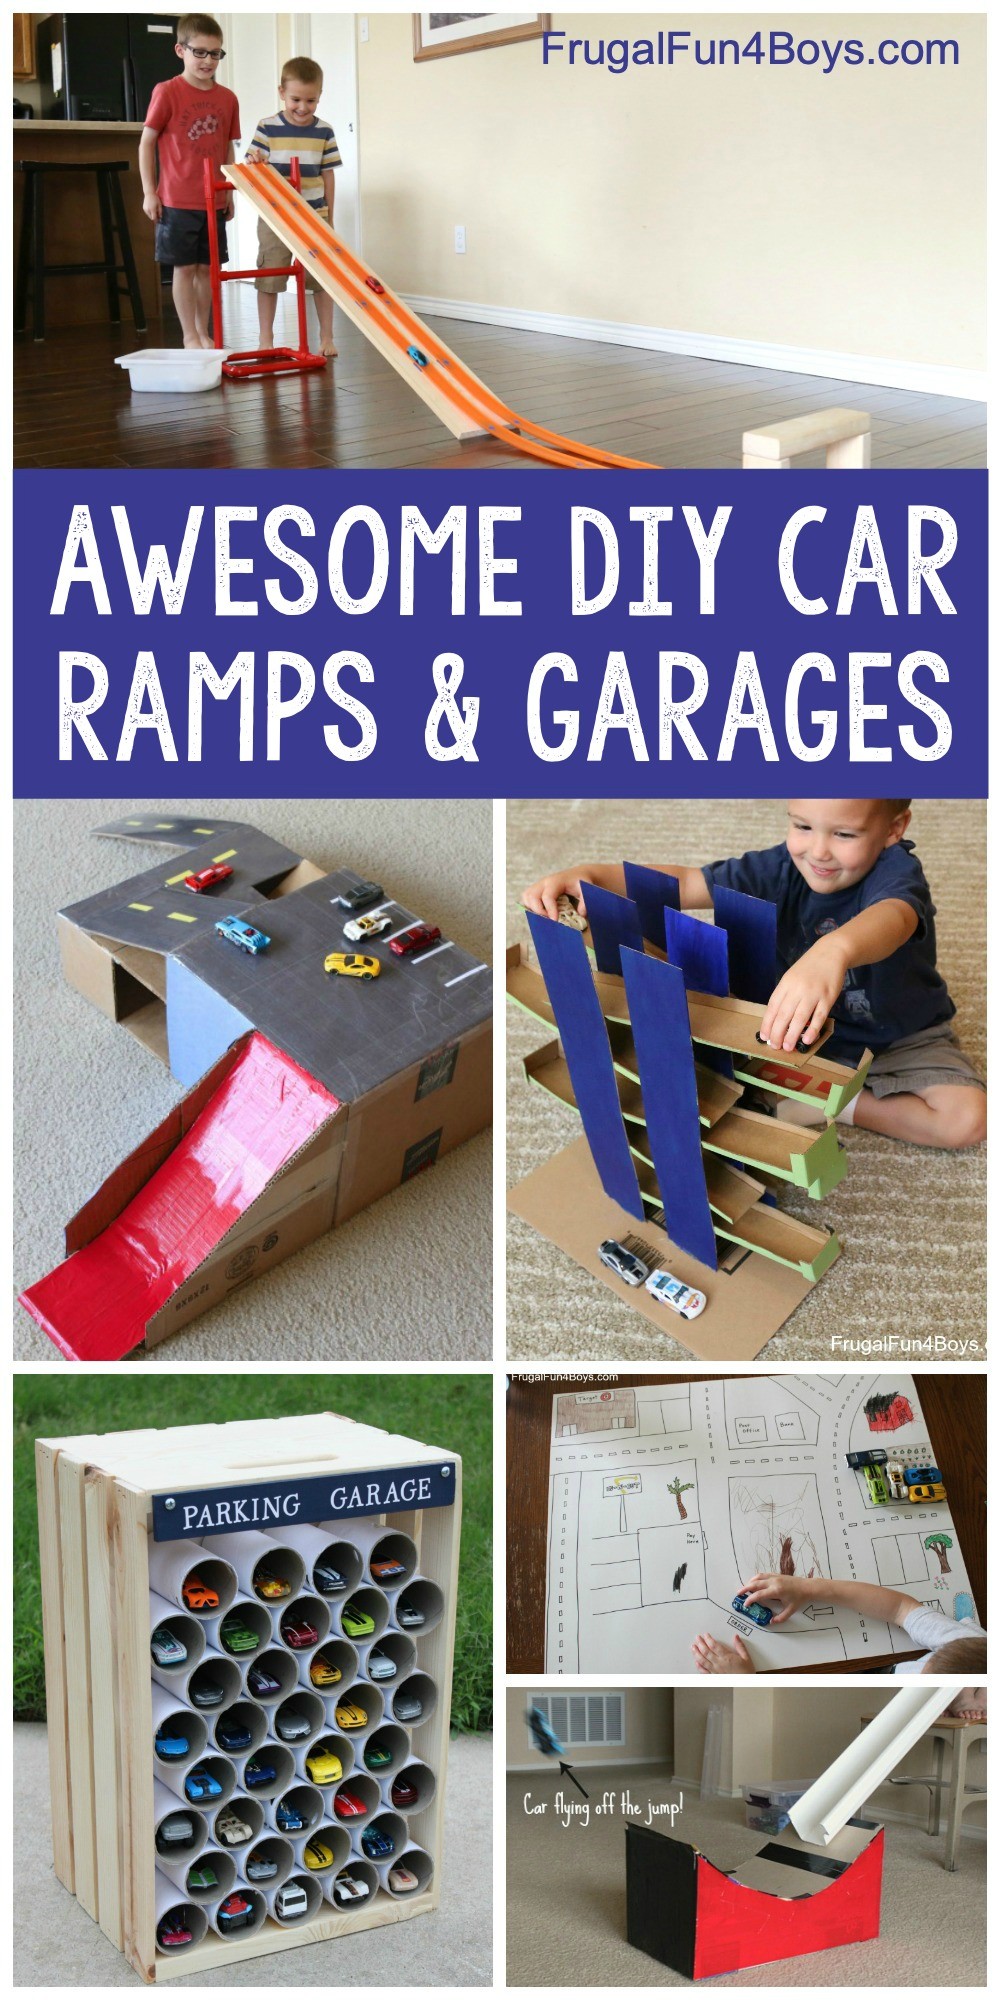 Awesome Diy Car Ramps And Garages For Toy Cars Frugal